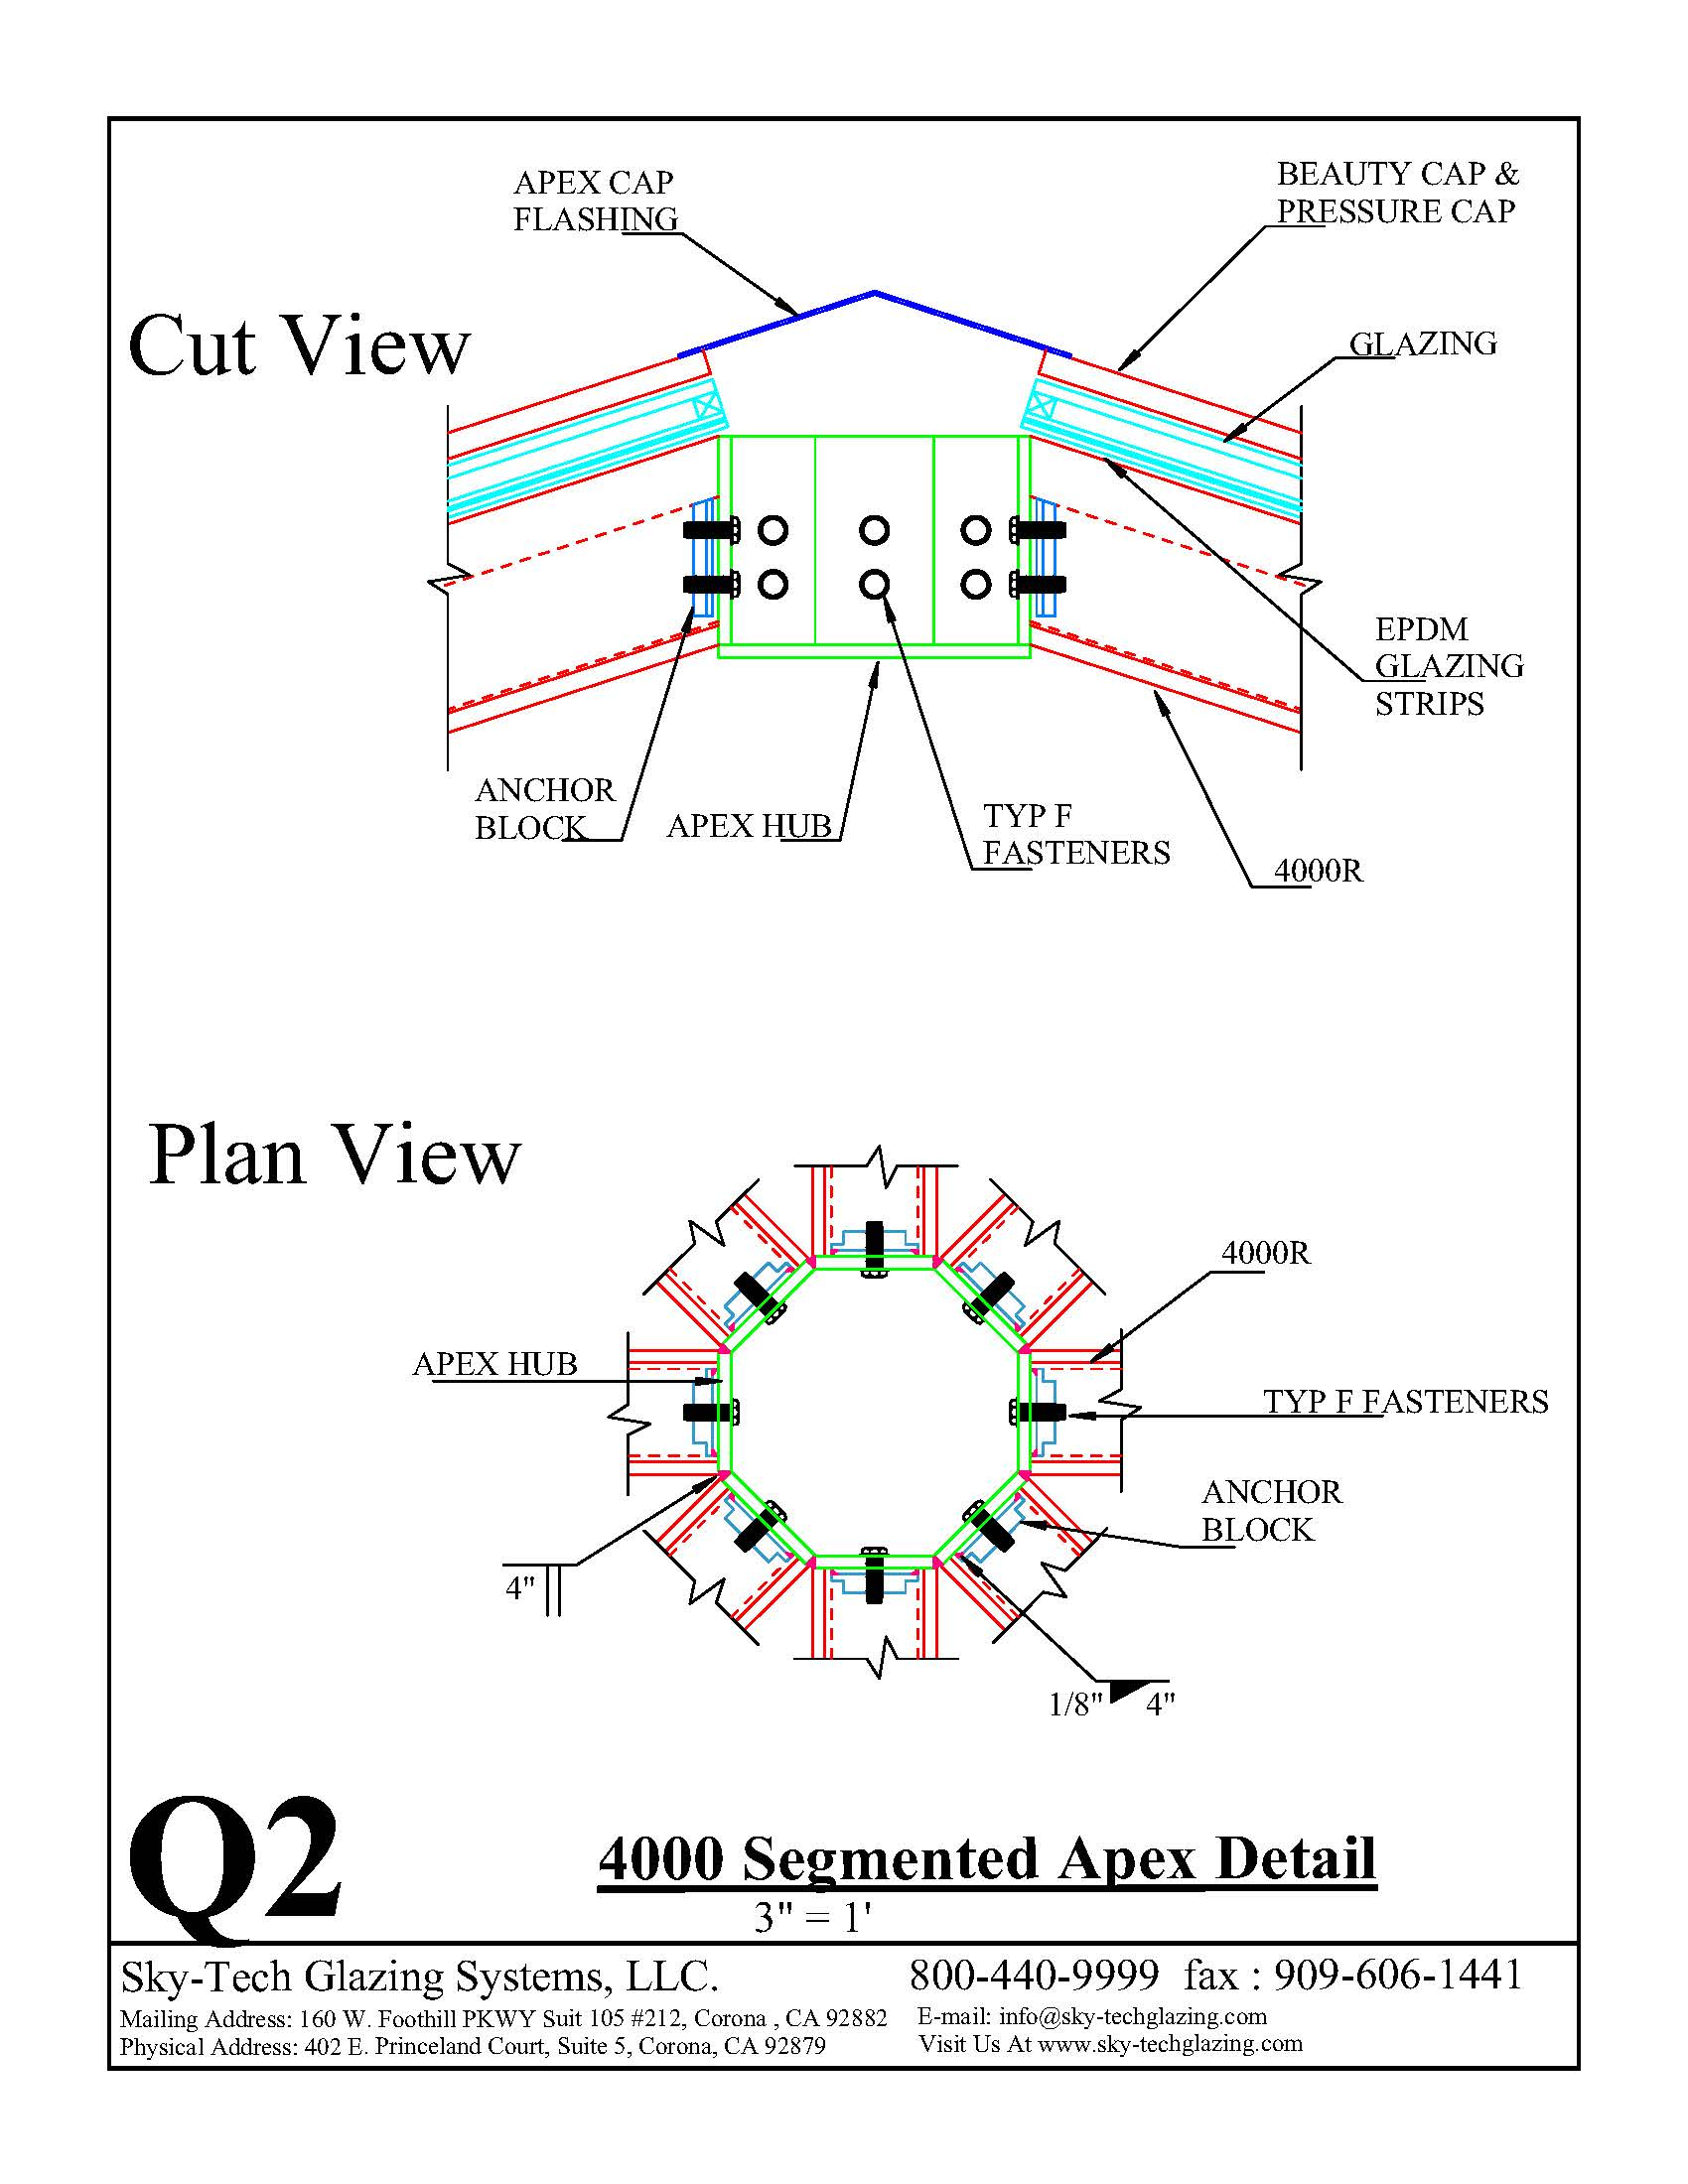 Q2 4000 Segmented Apex Detail